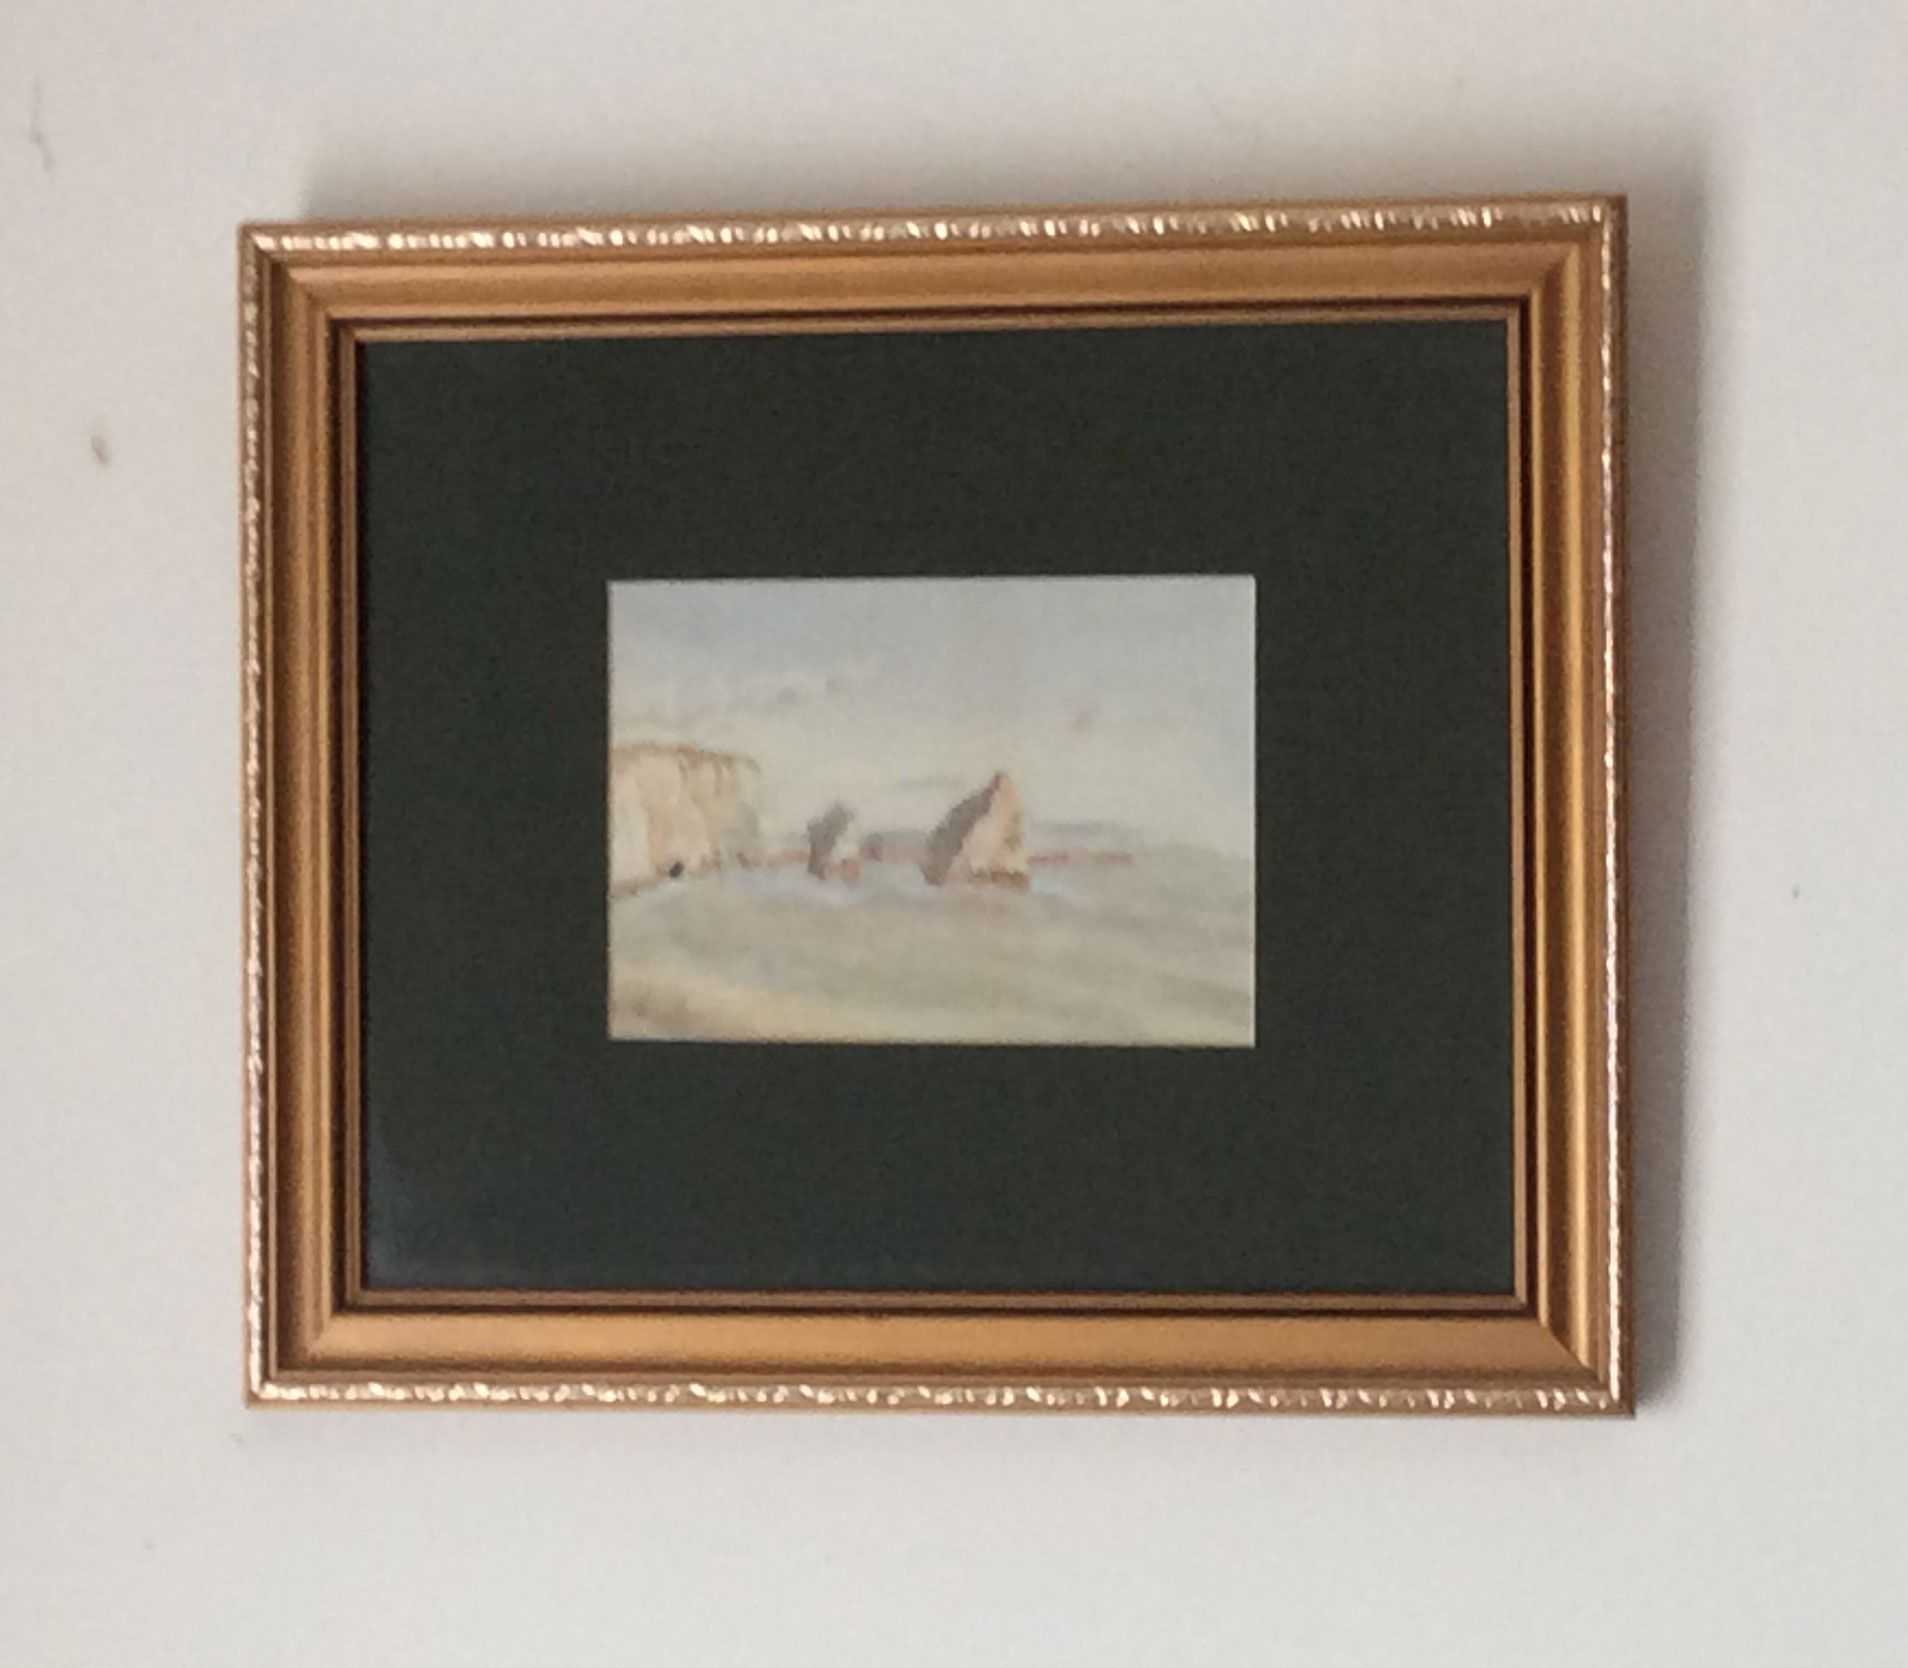 A Lovely Watercolour Signed On The Back E Tighe September 1866 Watercolour Is 17 By 12 Cms Approximately And Is Mounted In A 12 By Watercolor Painting Frame